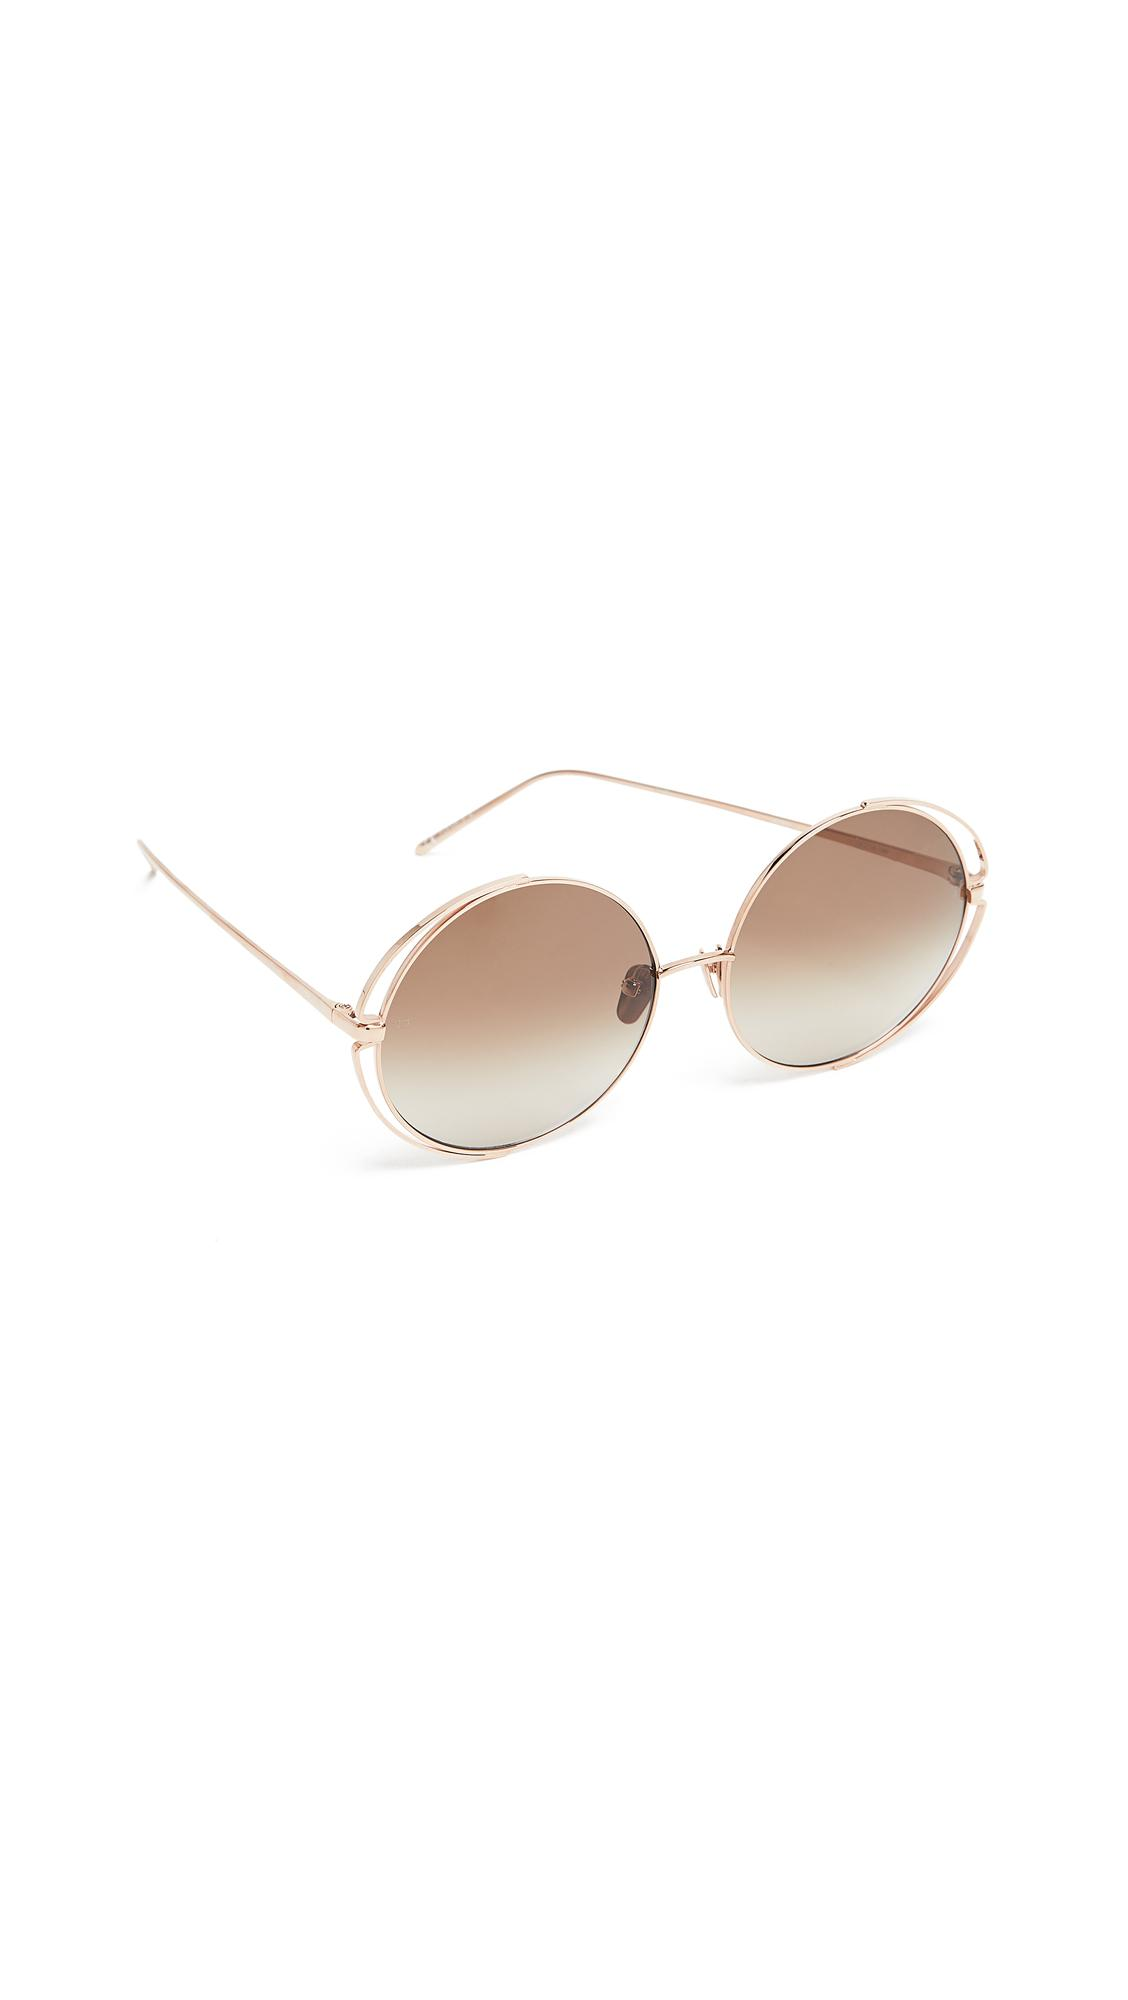 cfd2dc374a4 Linda Farrow Luxe 18K White Gold Plate Round Oversized Sunglasses In Milky  Grey Truffle